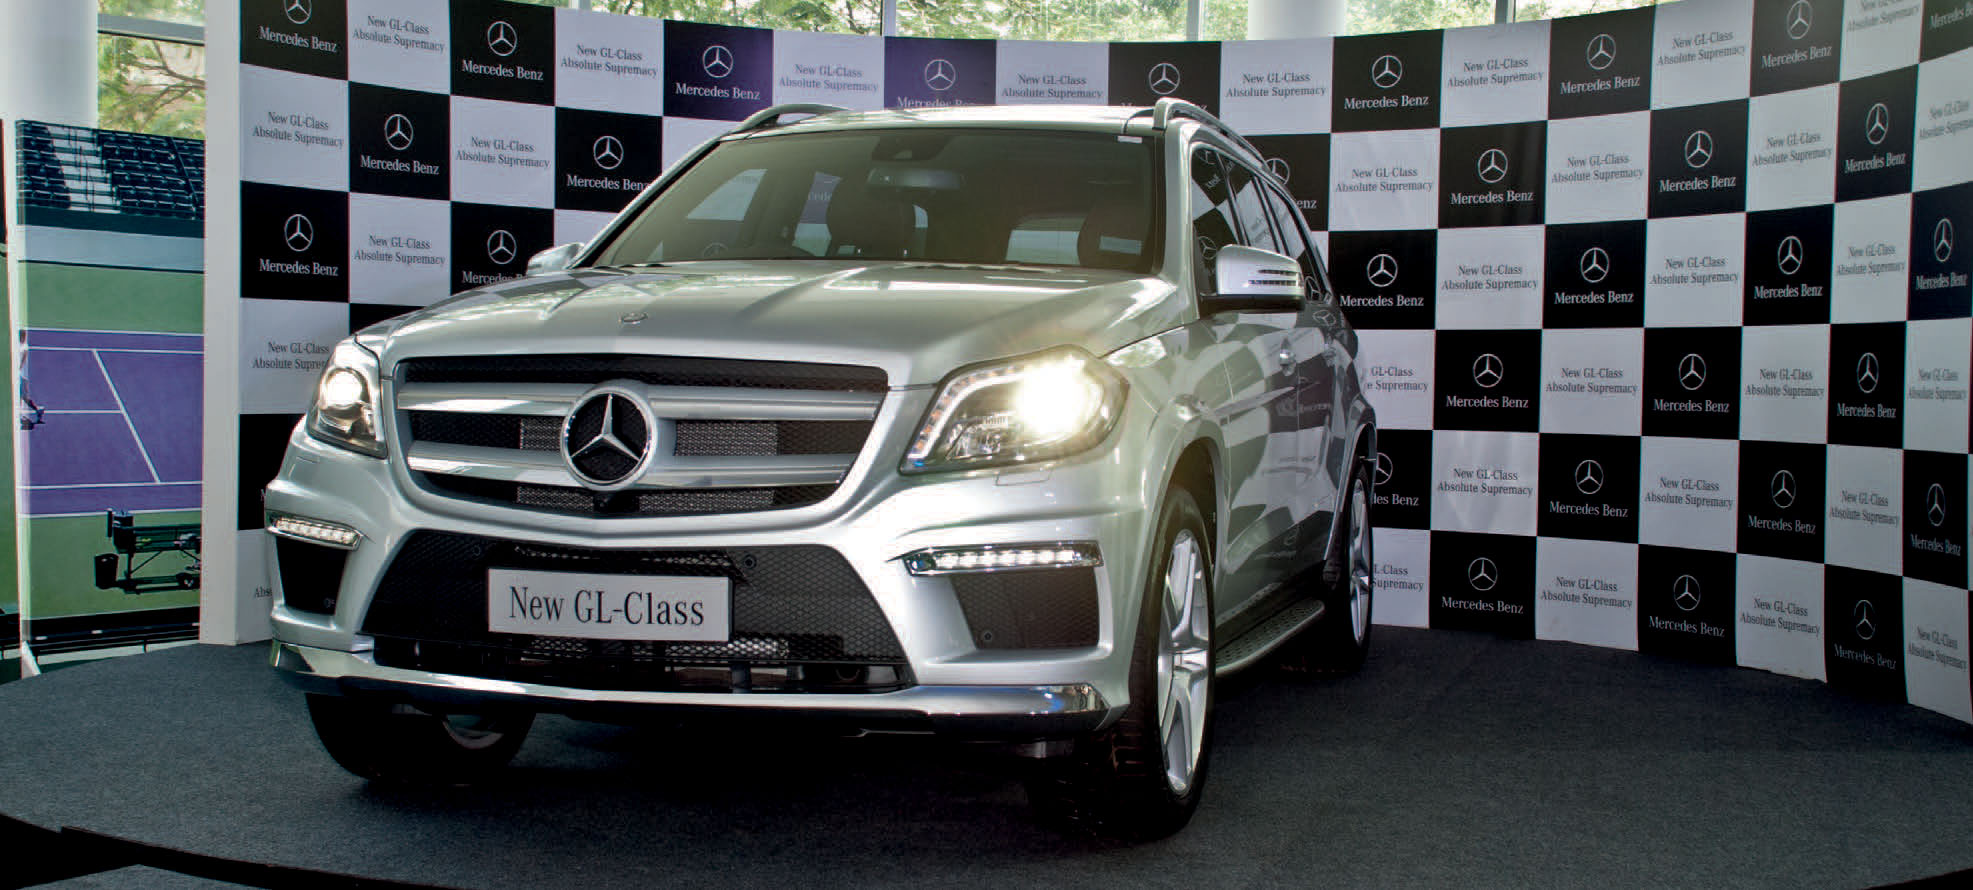 Mercedes Benz India 2013 The Year Of Change Springerlink